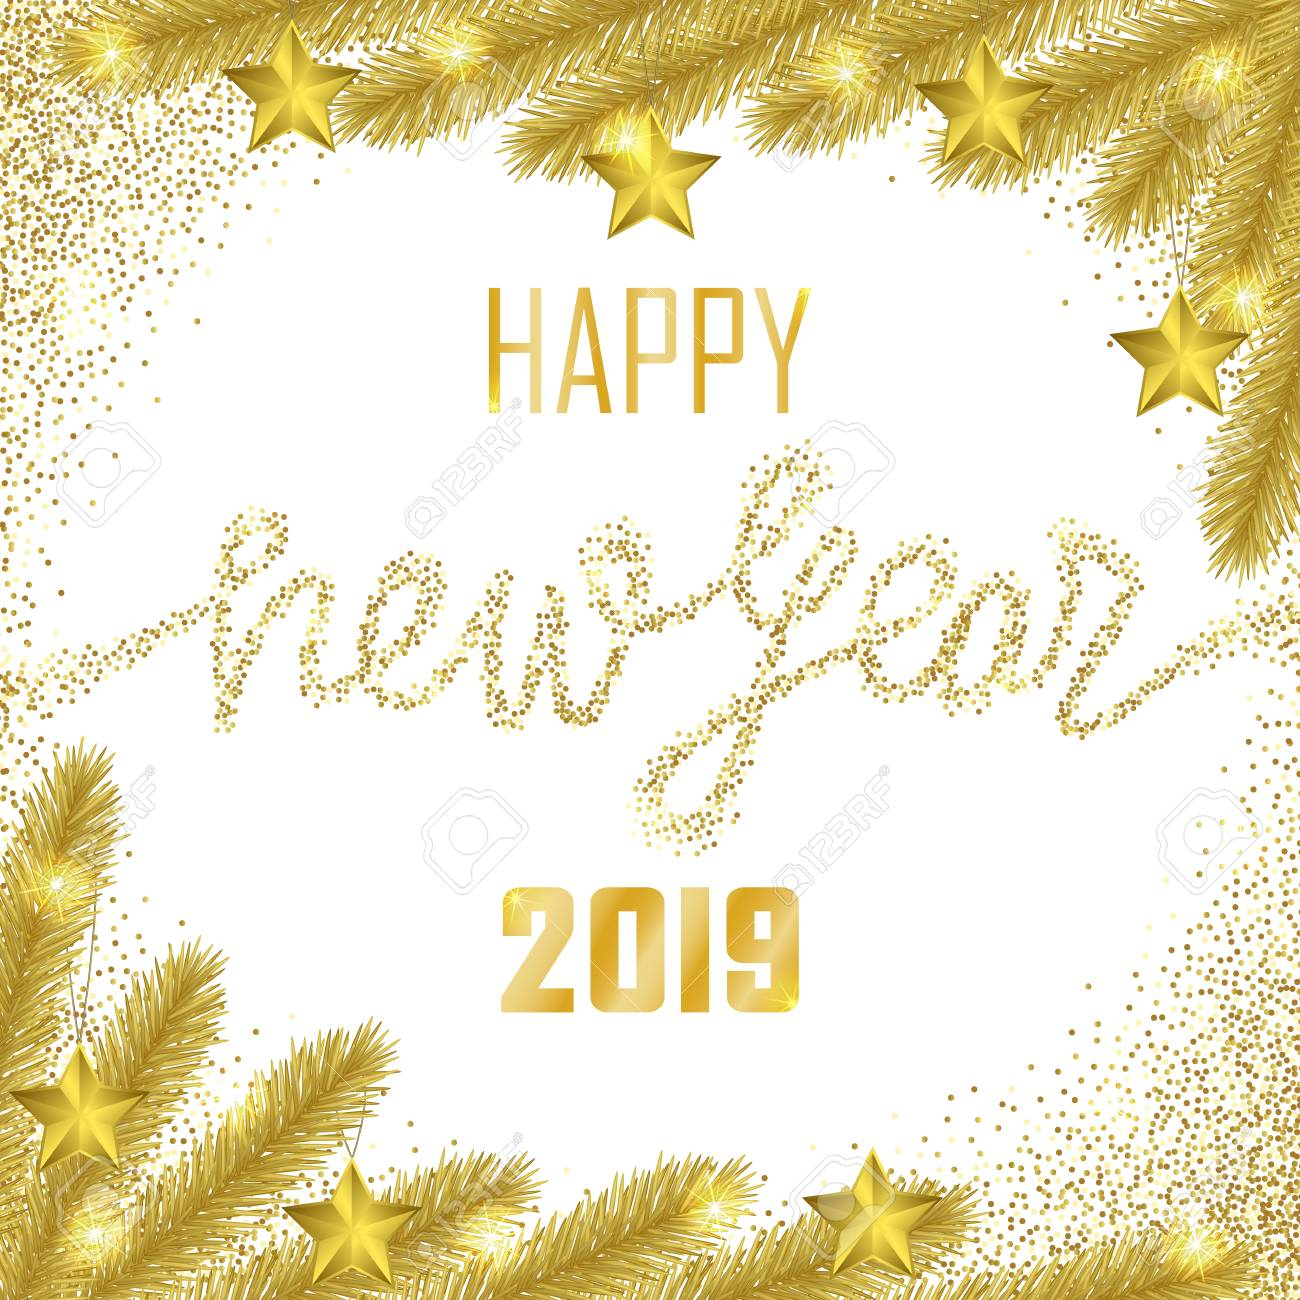 Happy New Year 2019 Golden Greeting Card On White Background